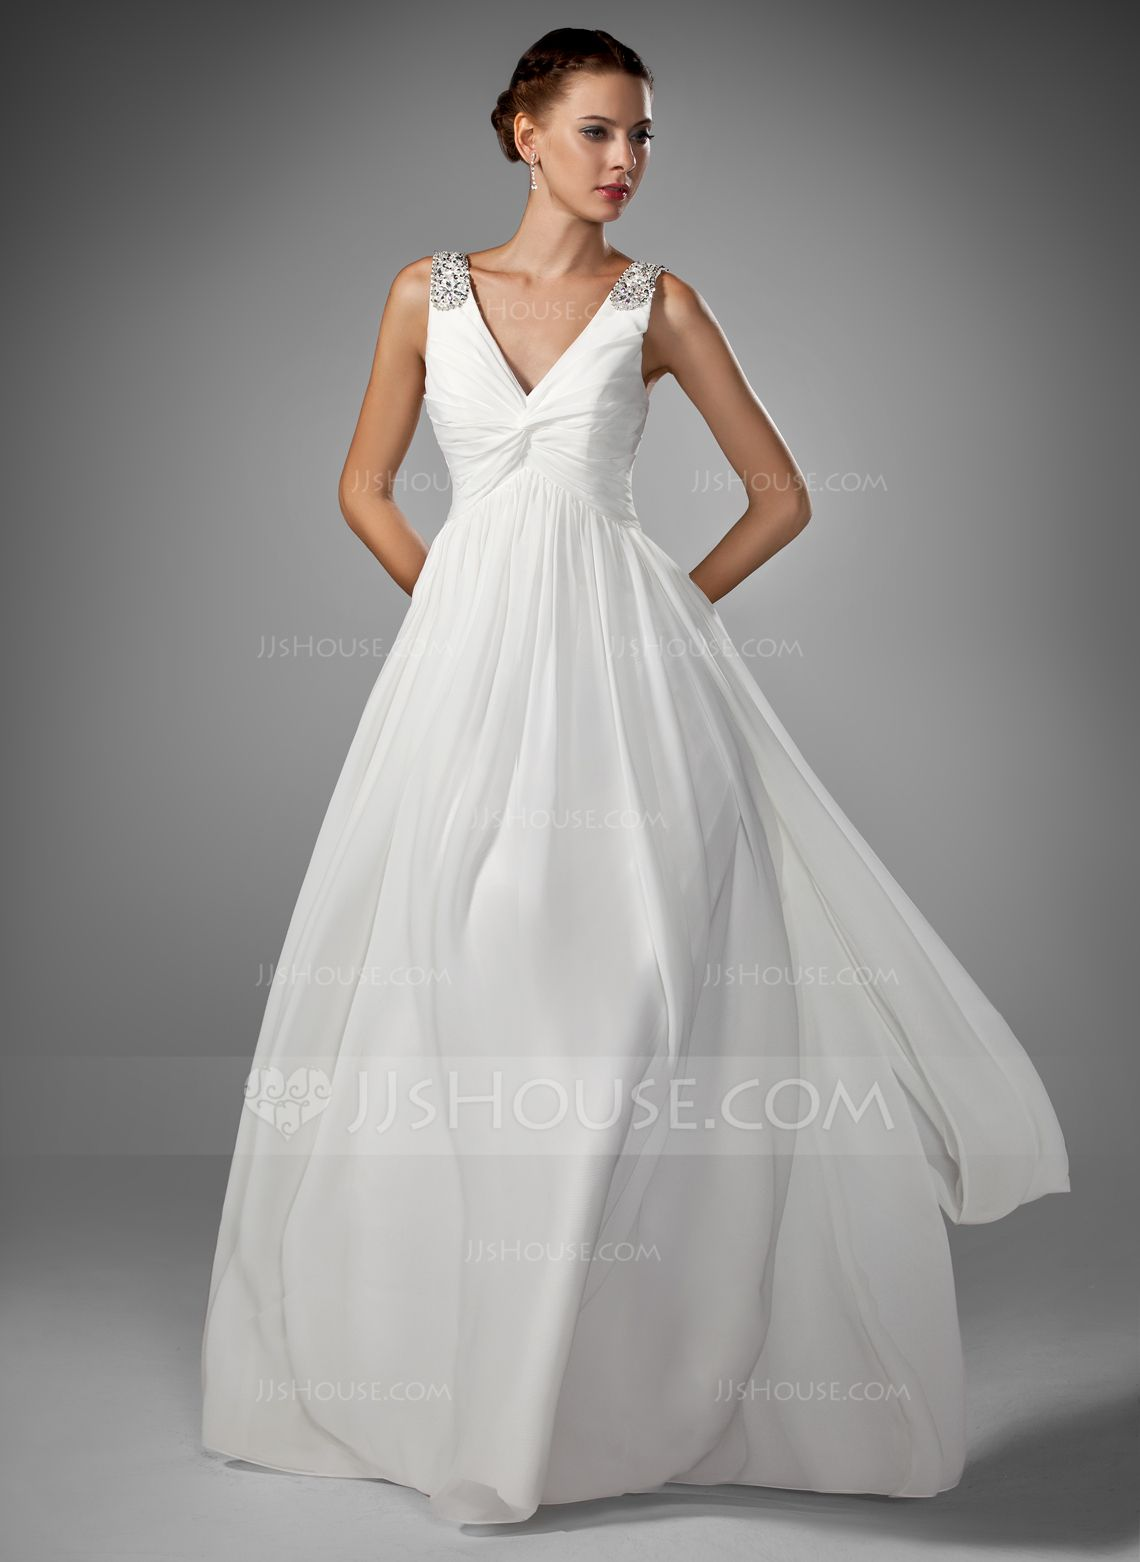 Wedding dresses v neck  ALinePrincess Vneck FloorLength Chiffon Wedding Dress With